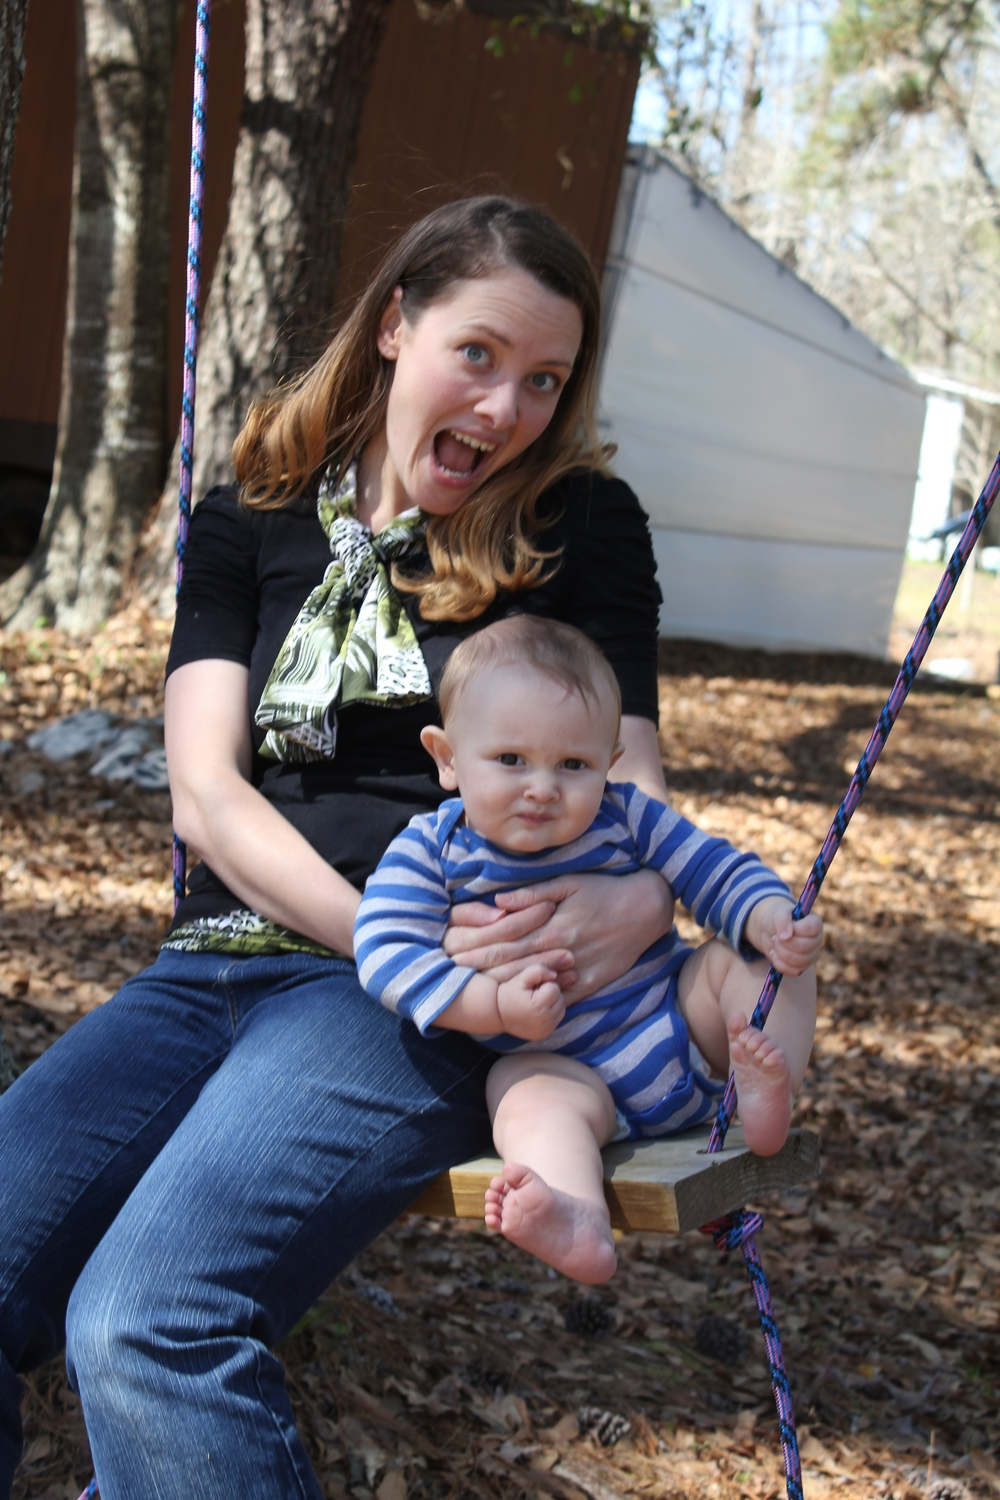 Enjoying the swing that crafty Uncle Durward made a few months back. Judah's not so sure about my swinging skills...